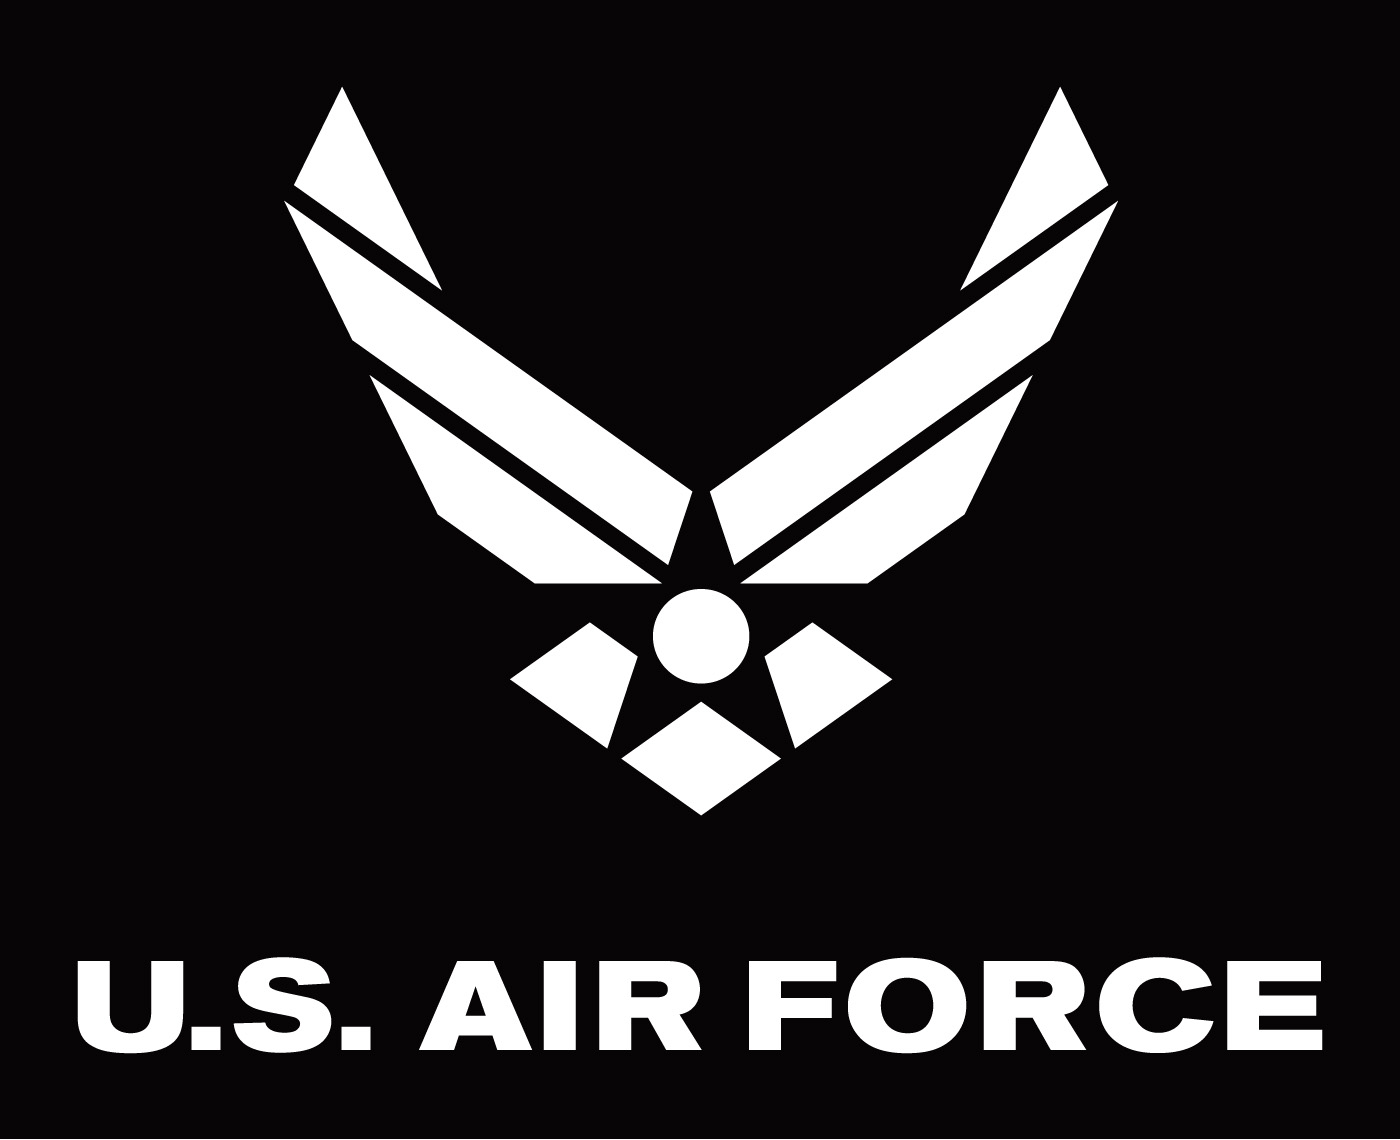 Art air force symbol with logotype white on black background the air force symbol is buycottarizona Images